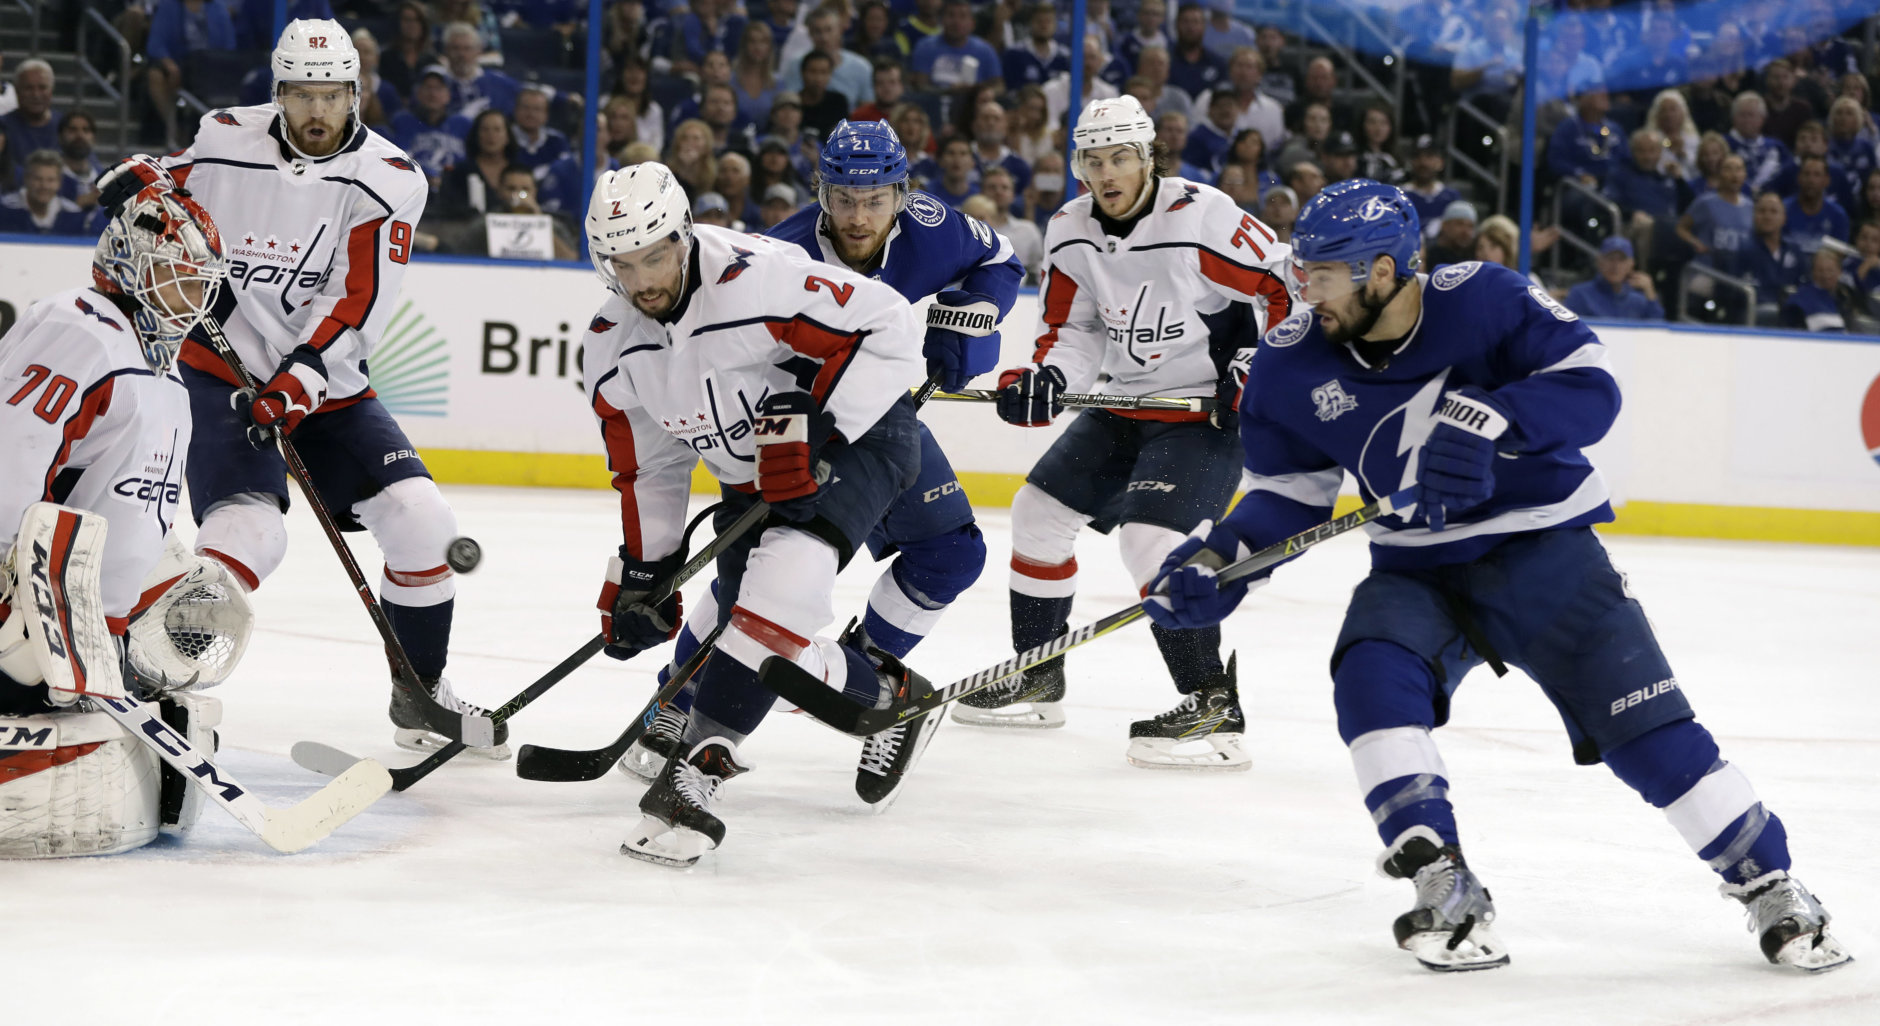 Tampa Bay Lightning center Tyler Johnson (9) gets off a shot on Washington Capitals goaltender Braden Holtby (70) as defenseman Matt Niskanen (2) and center Evgeny Kuznetsov (92) looks for a rebound during the second period of Game 5 of the NHL Eastern Conference finals hockey playoff series Saturday, May 19, 2018, in Tampa, Fla. (AP Photo/Chris O'Meara)